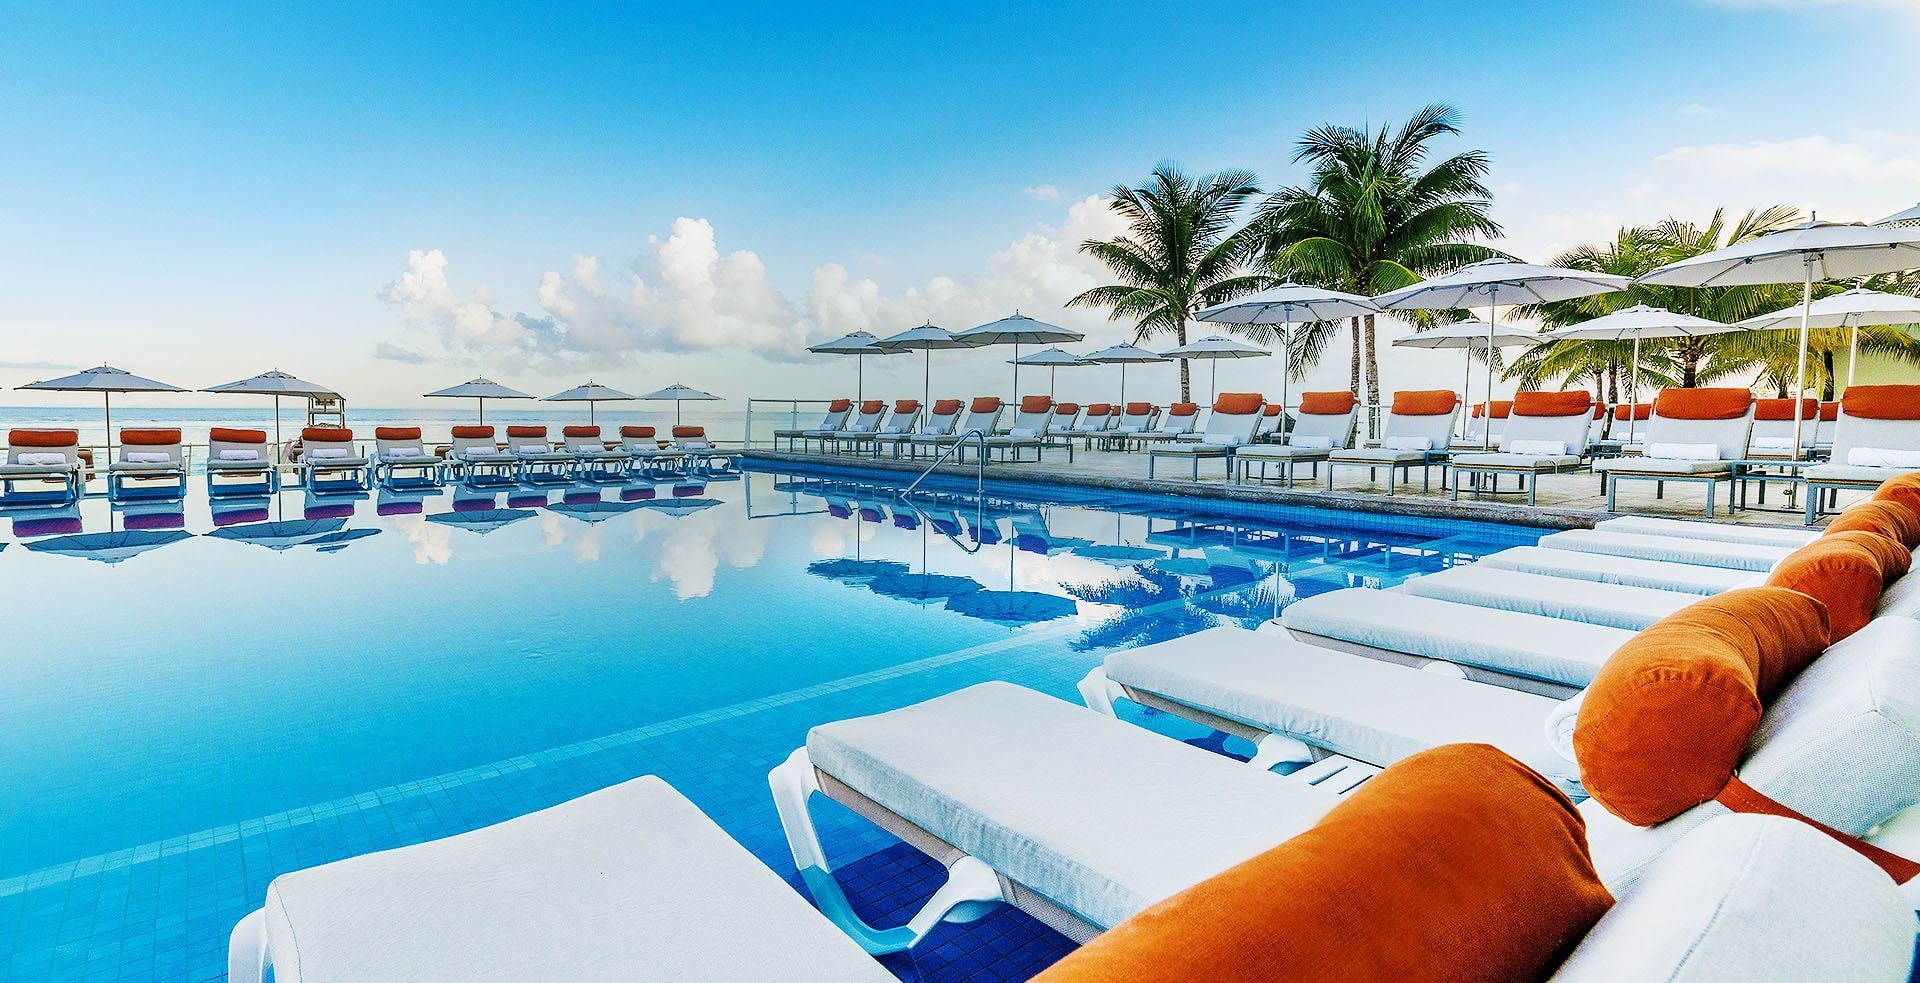 allinclusive holidays Palace Resorts ad  Vacation trips